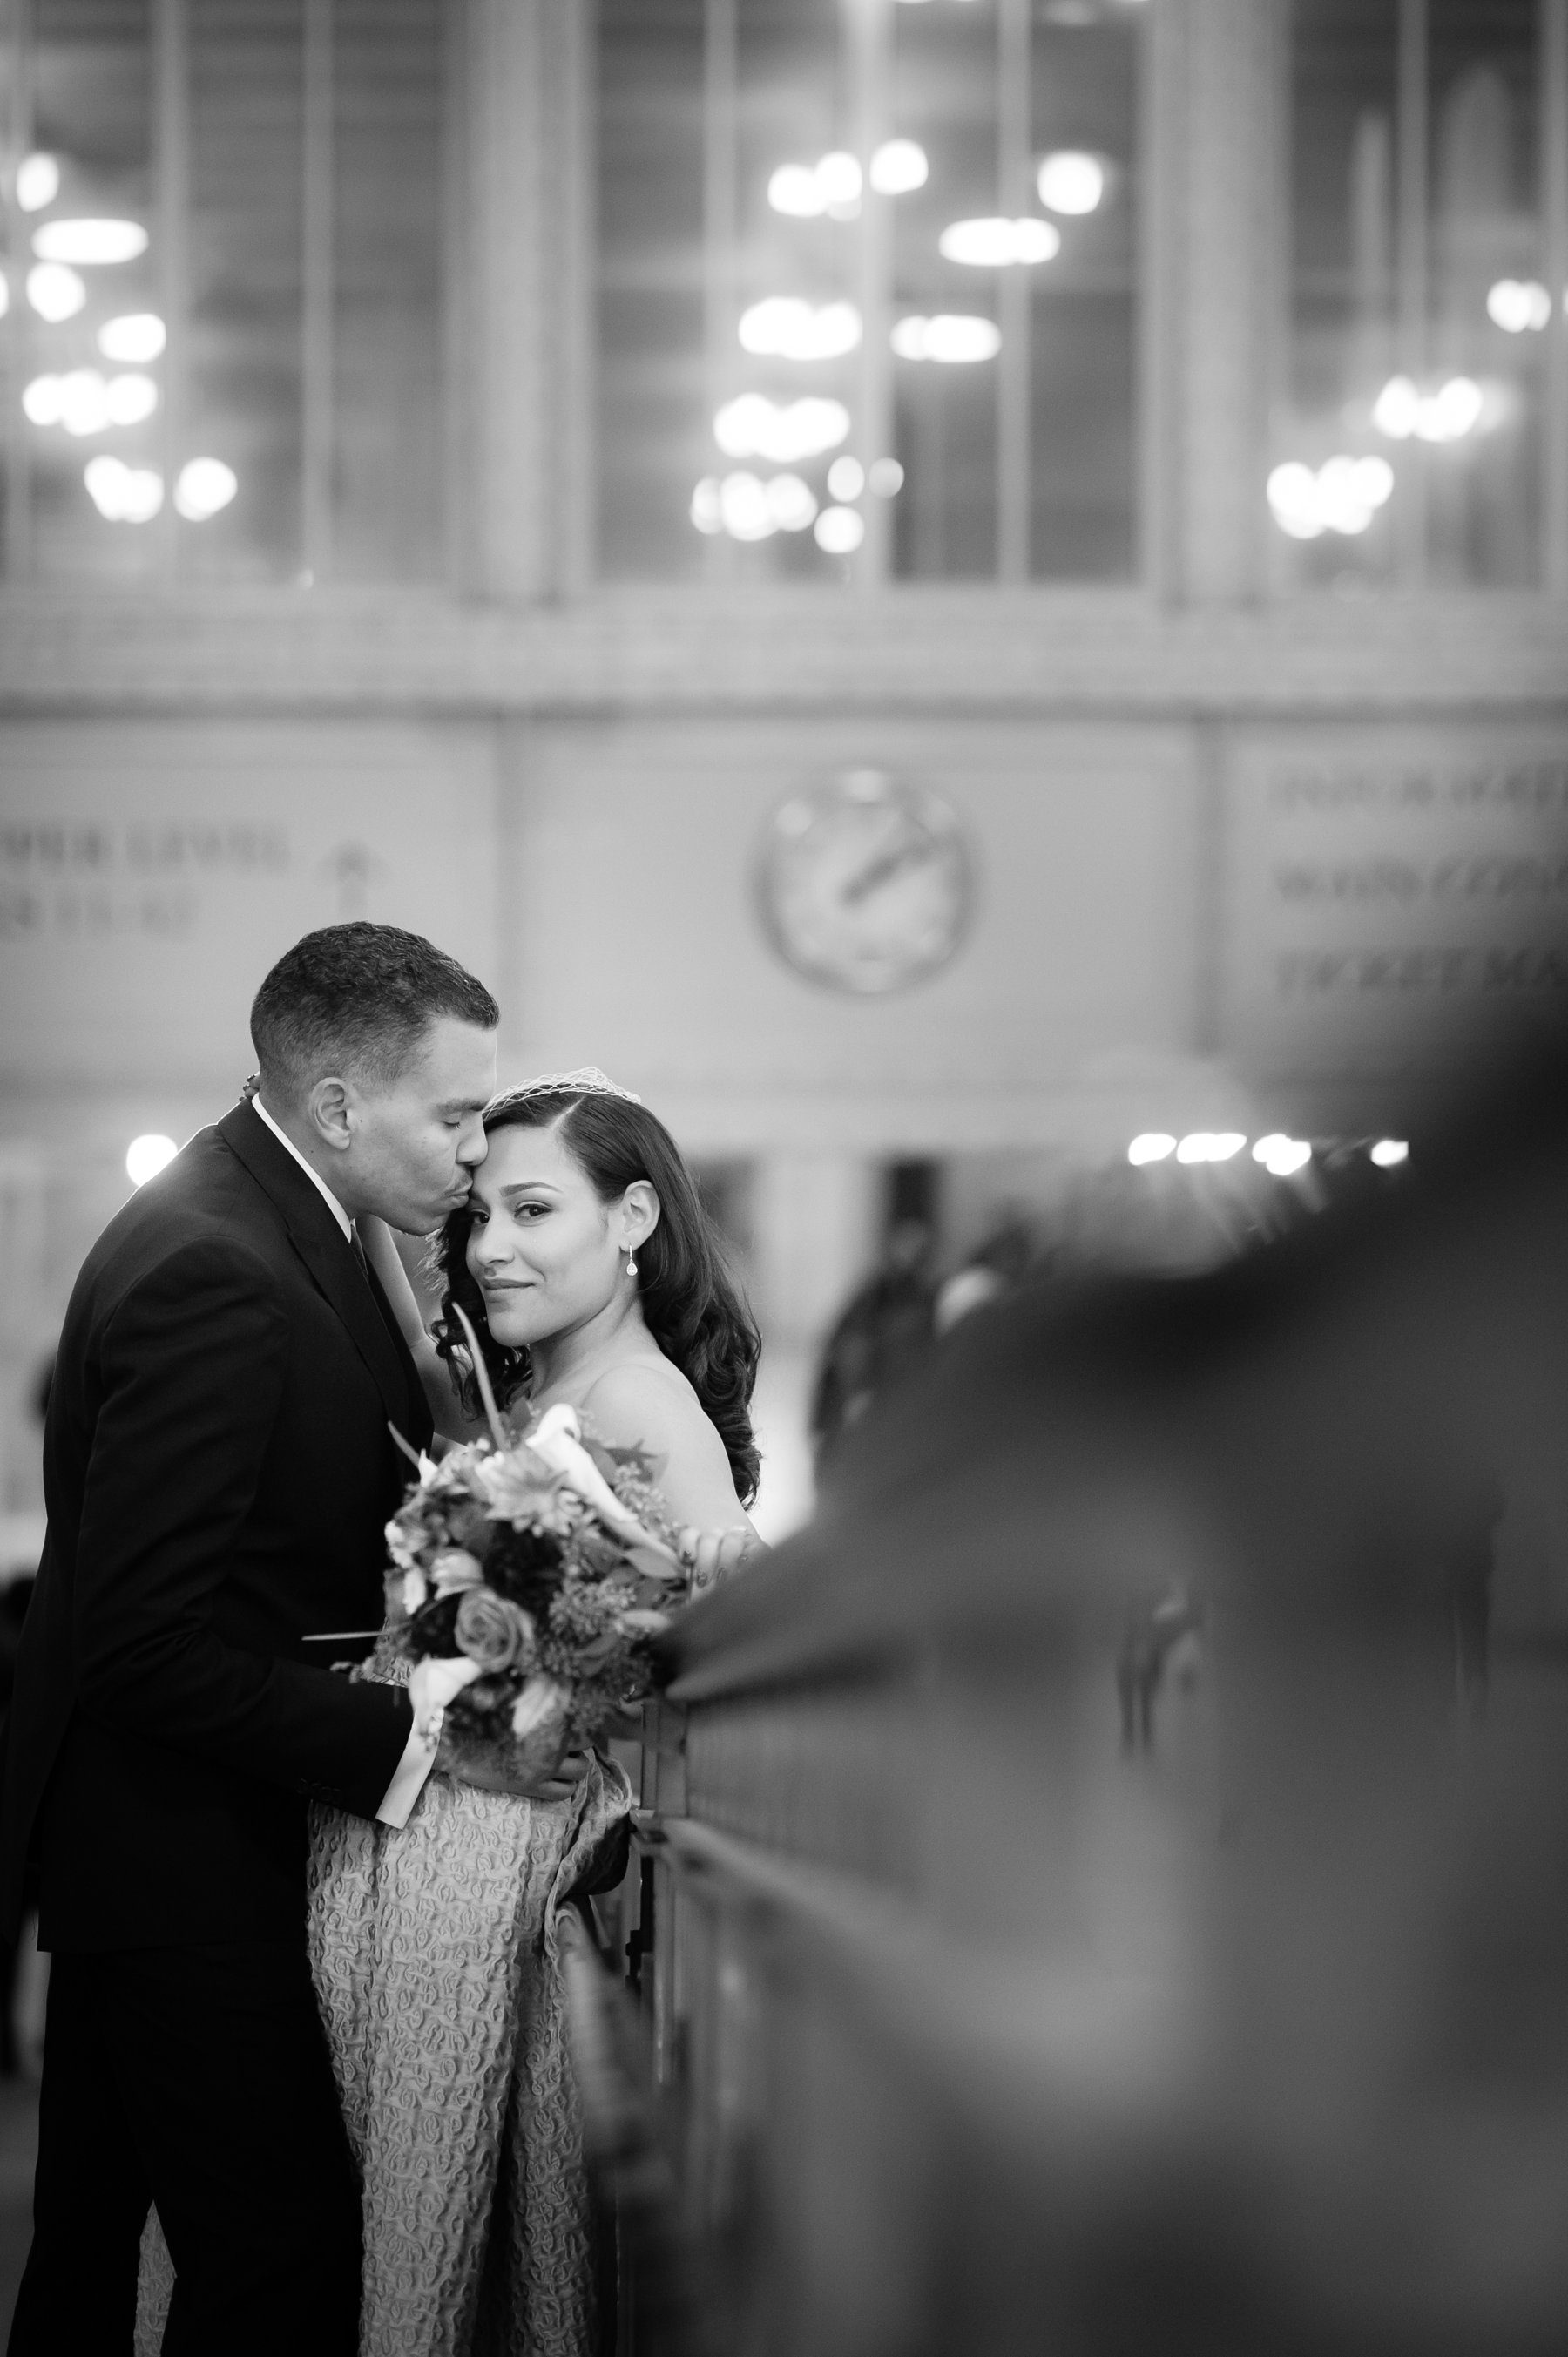 Hochzeit New York Grand Central Wedding Hochzeit In New York City